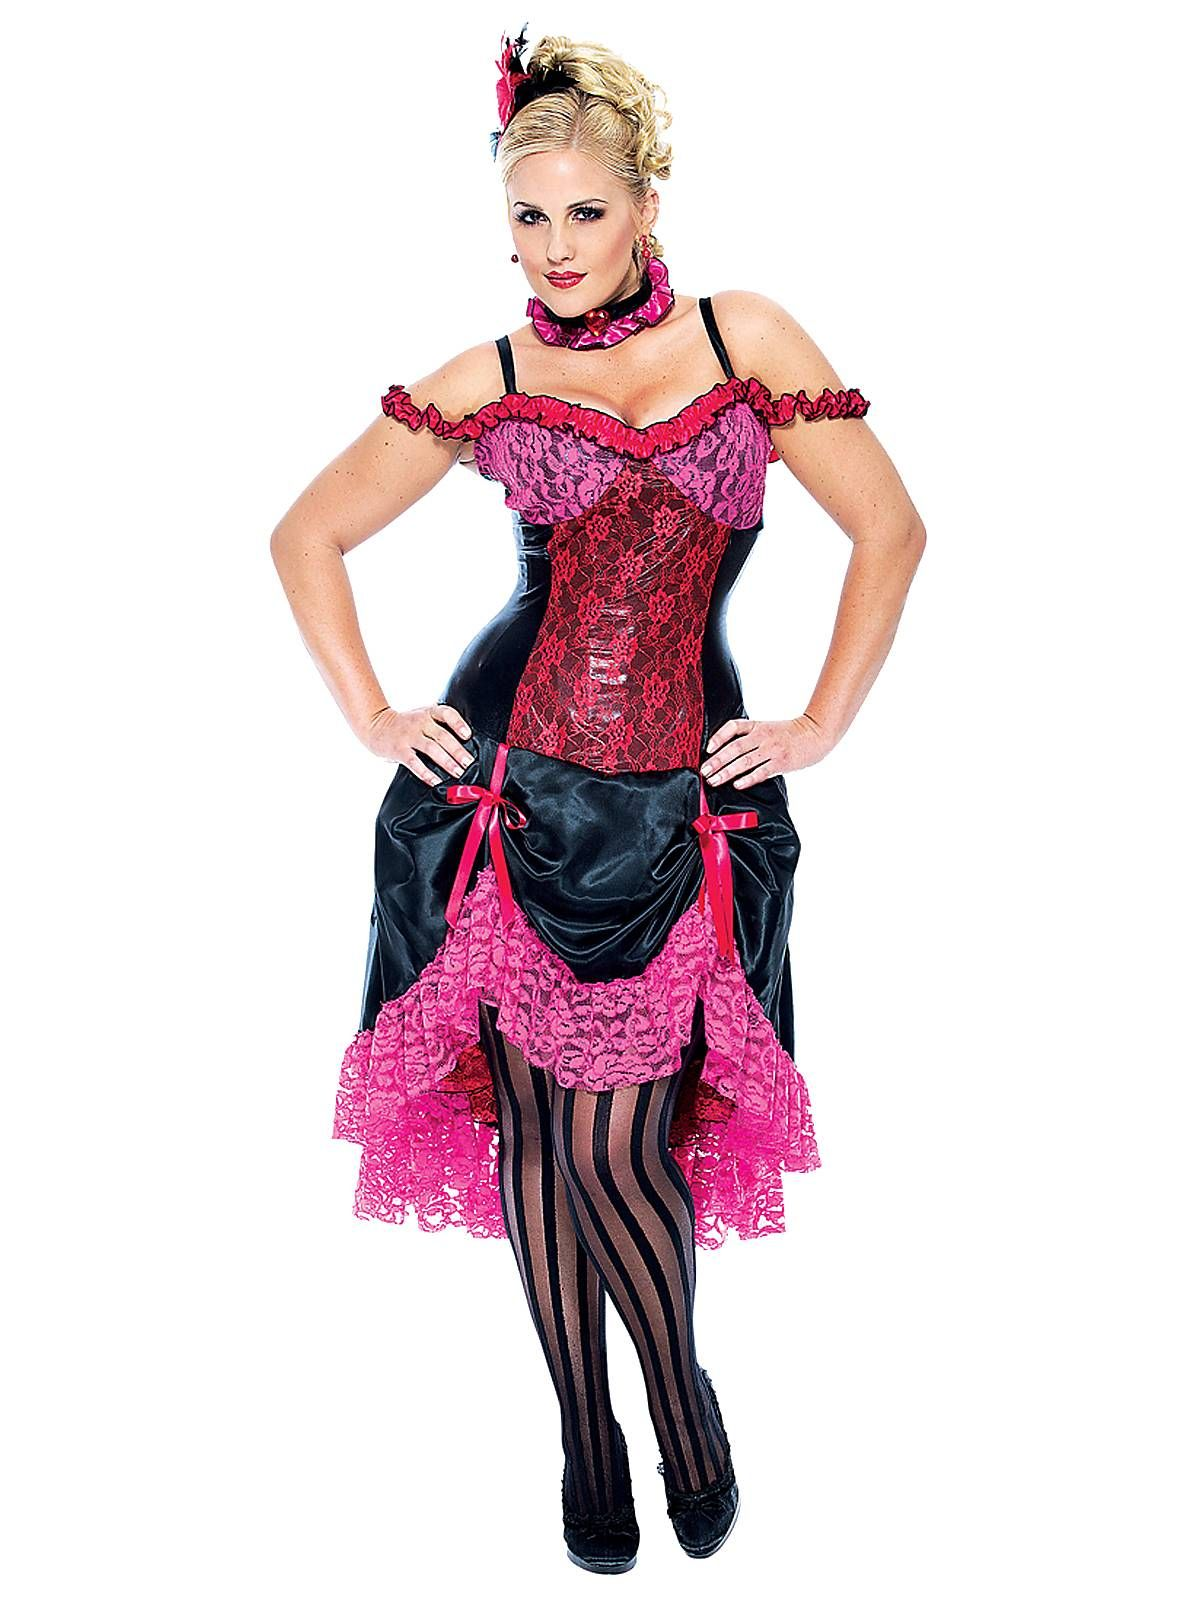 French cancan plus adult costume